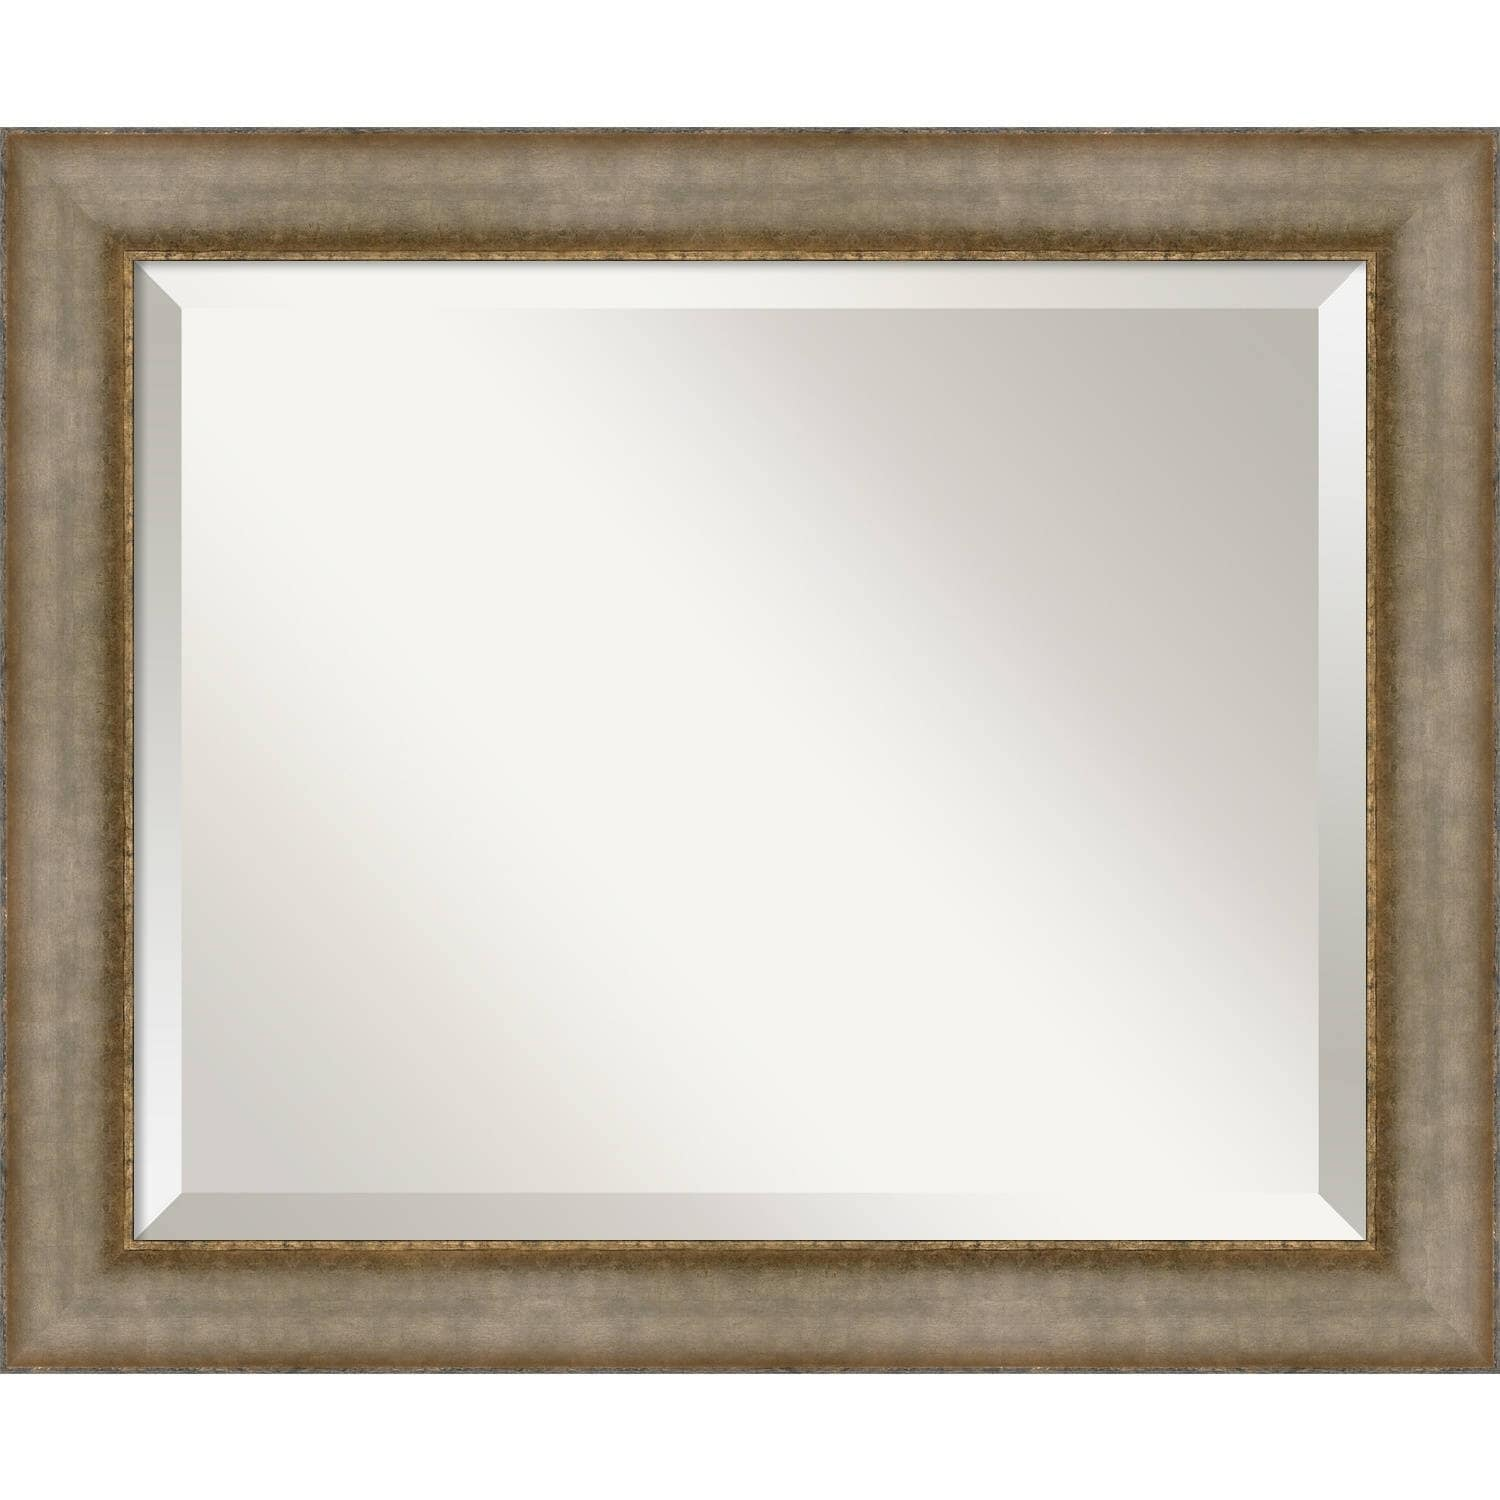 Nice 24x20 Picture Frame Frieze - Picture Frame Ideas ...